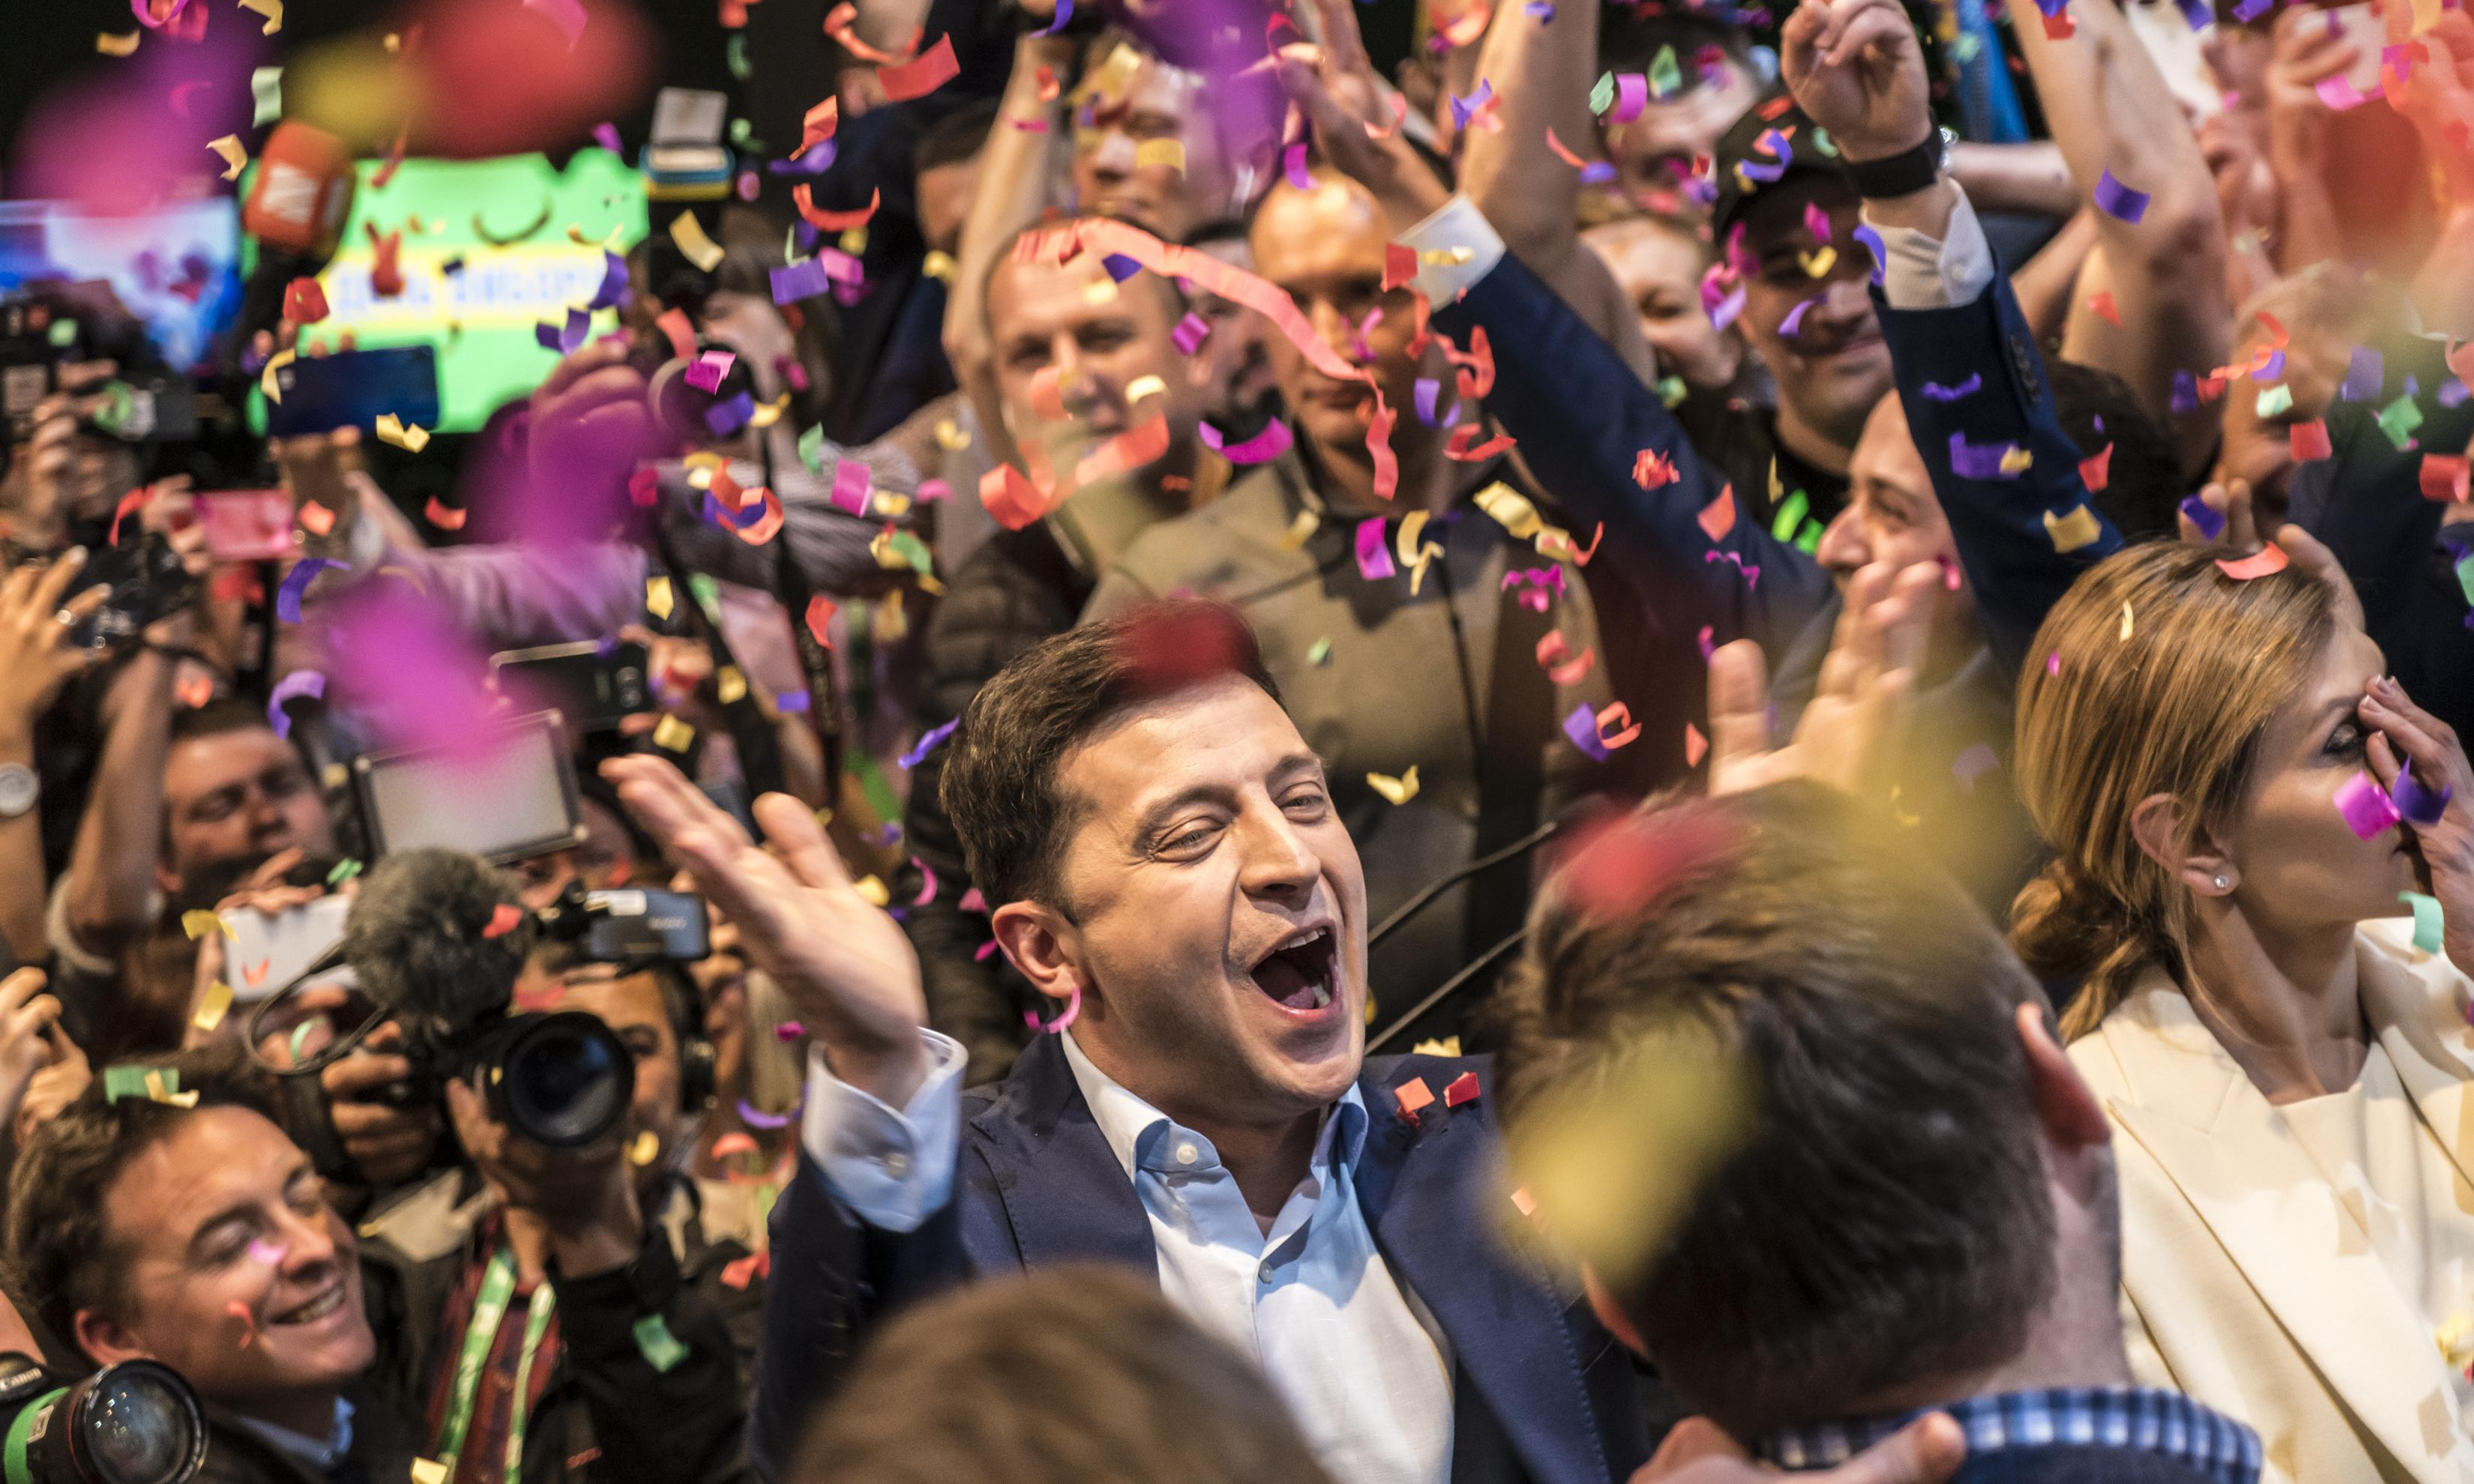 Zelenskiy's election proves Ukraine is a healthy democracy. Putin hates that